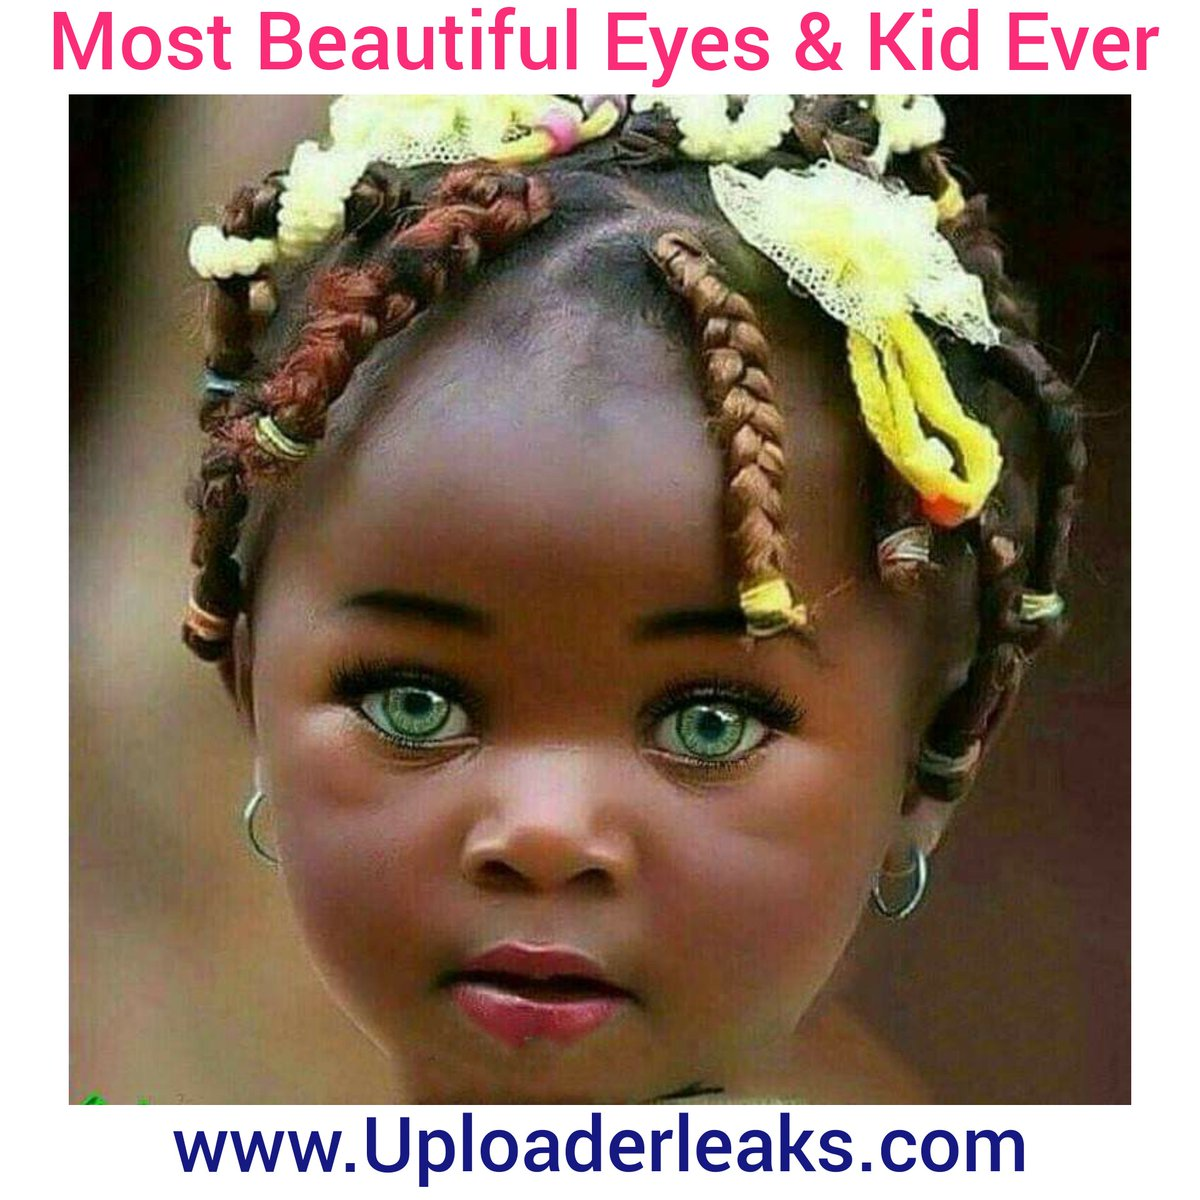 uploaderleaks on twitter quotmost beautiful eyes amp cutest